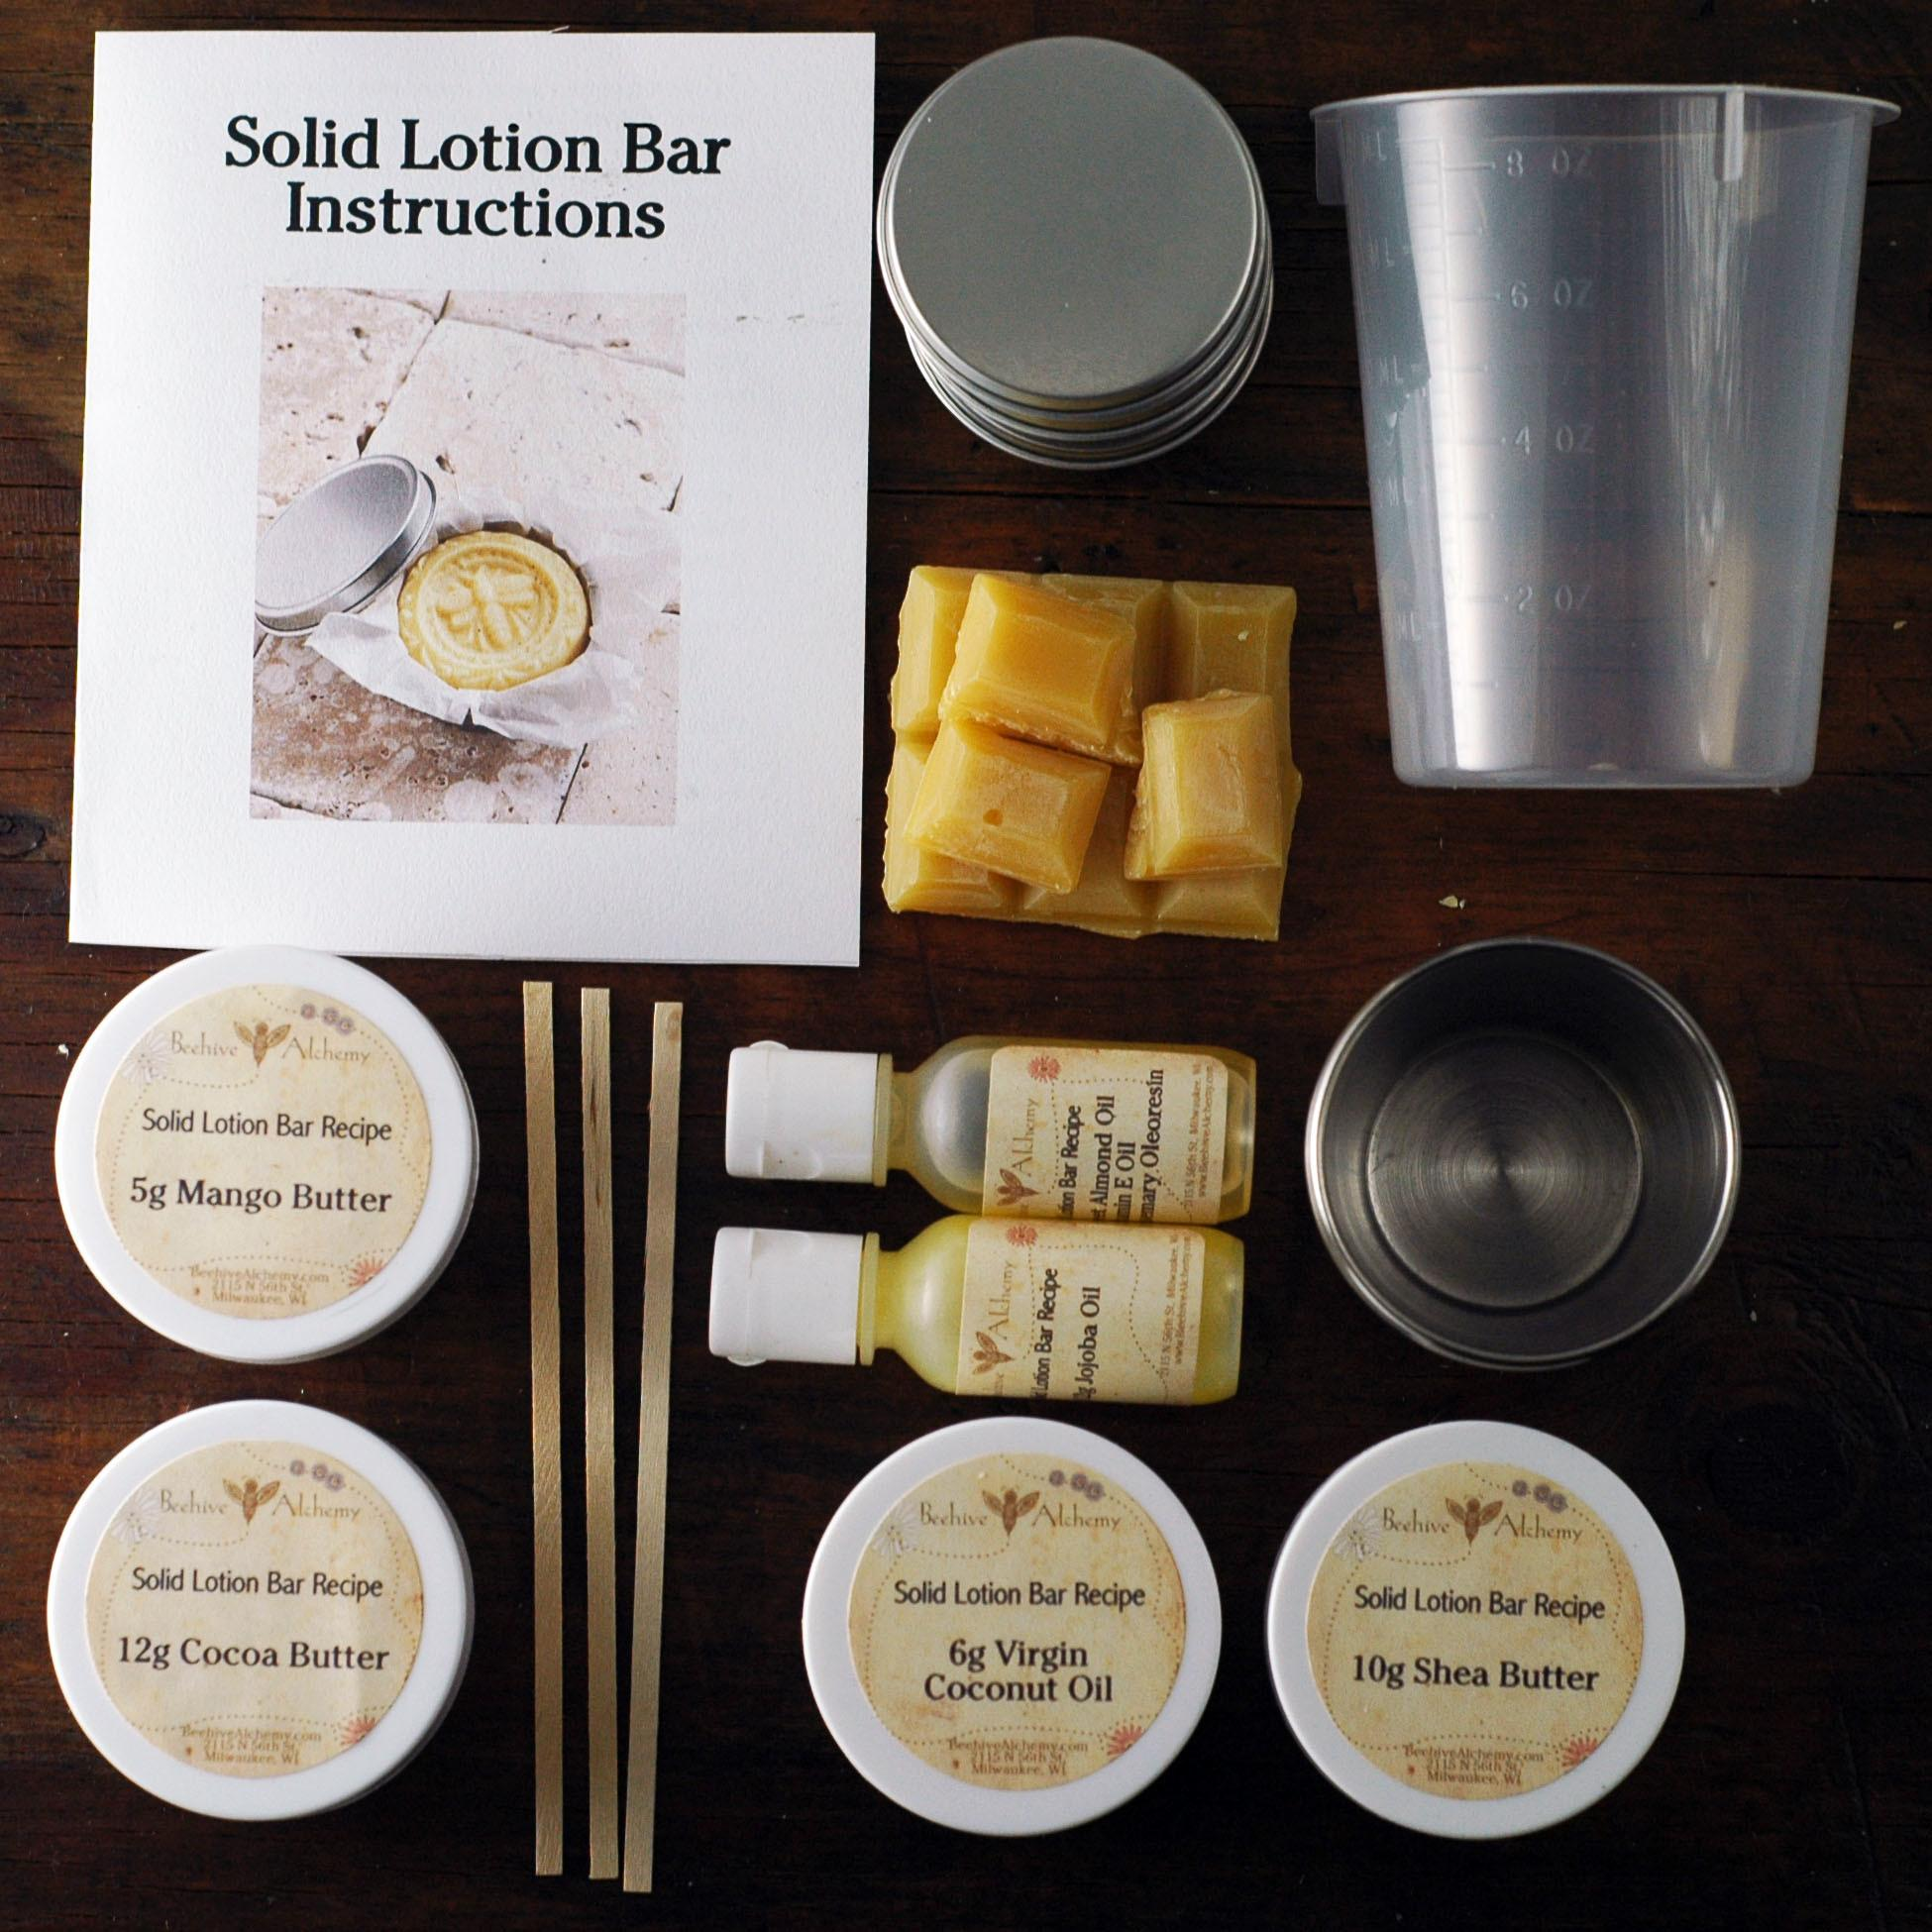 Solid Lotion Bar Kit